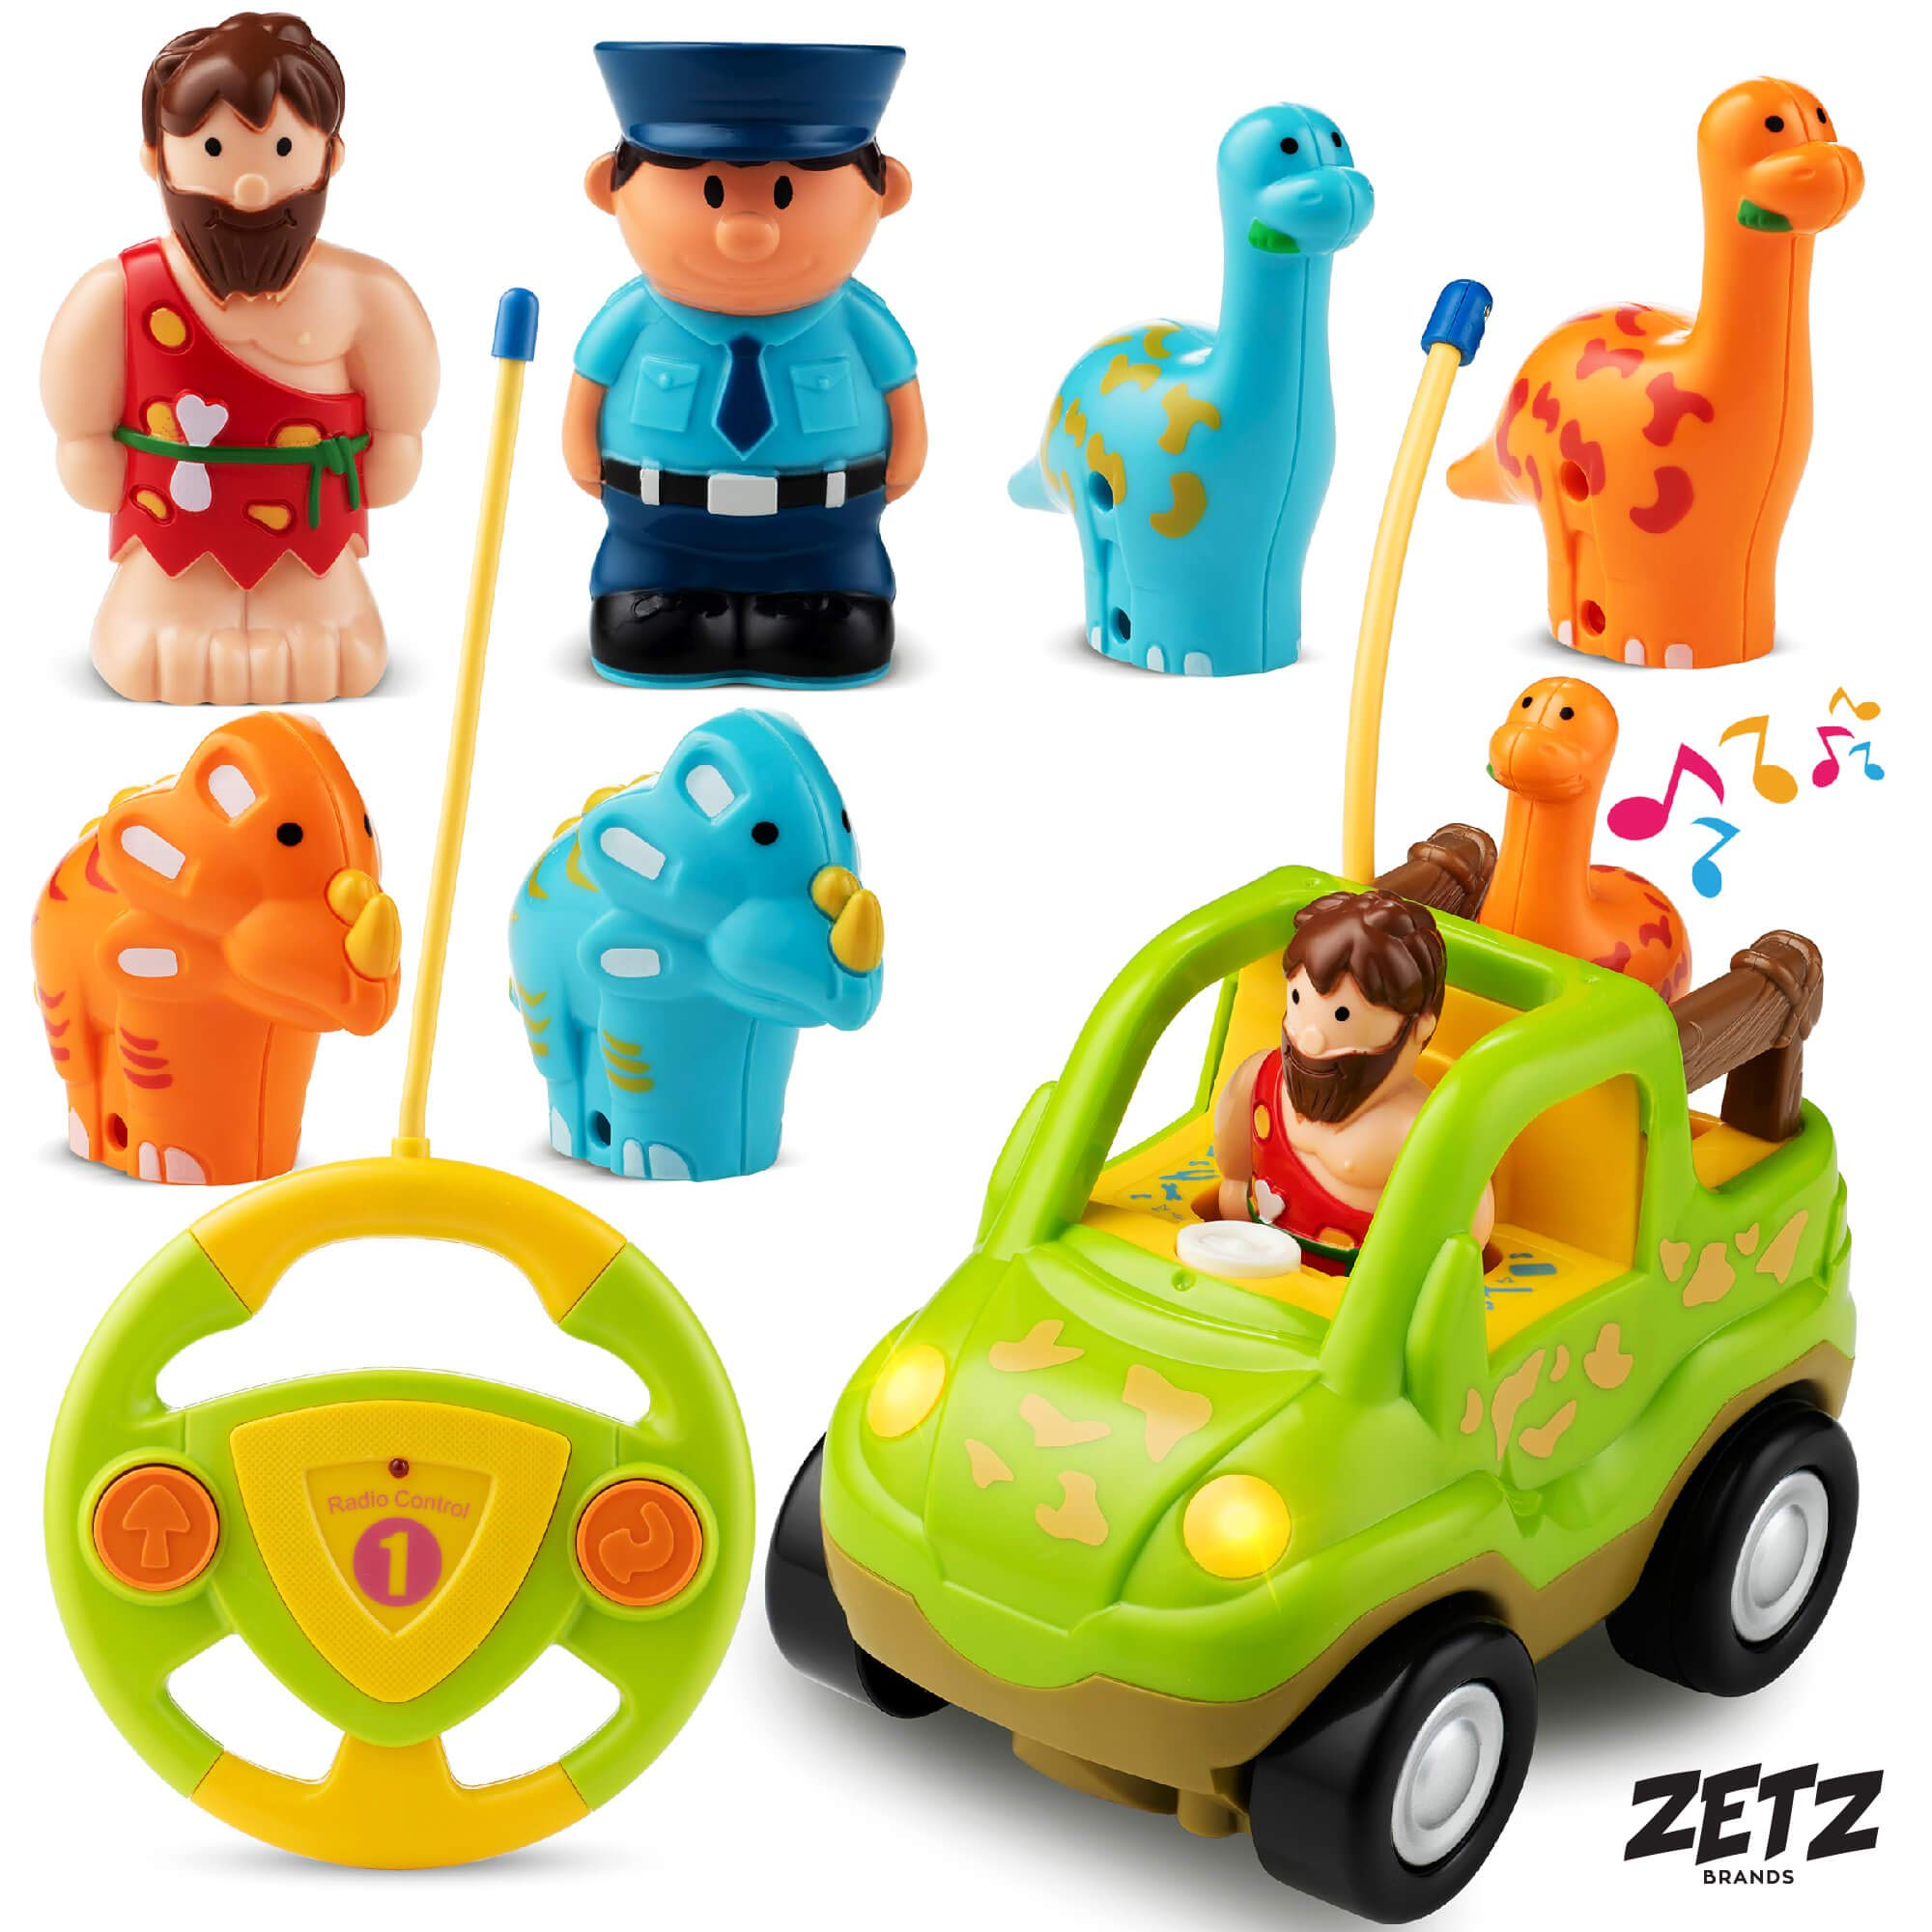 Remote Control Car Dino Toys Set - with Dinosaur Figures, Watchman & Caveman - Includes 4 Dinosaur Toys for 3 Year Olds & Up | RC Cars for Boys Learning Toys with Plastic Dinosaur for Kids by Zetz